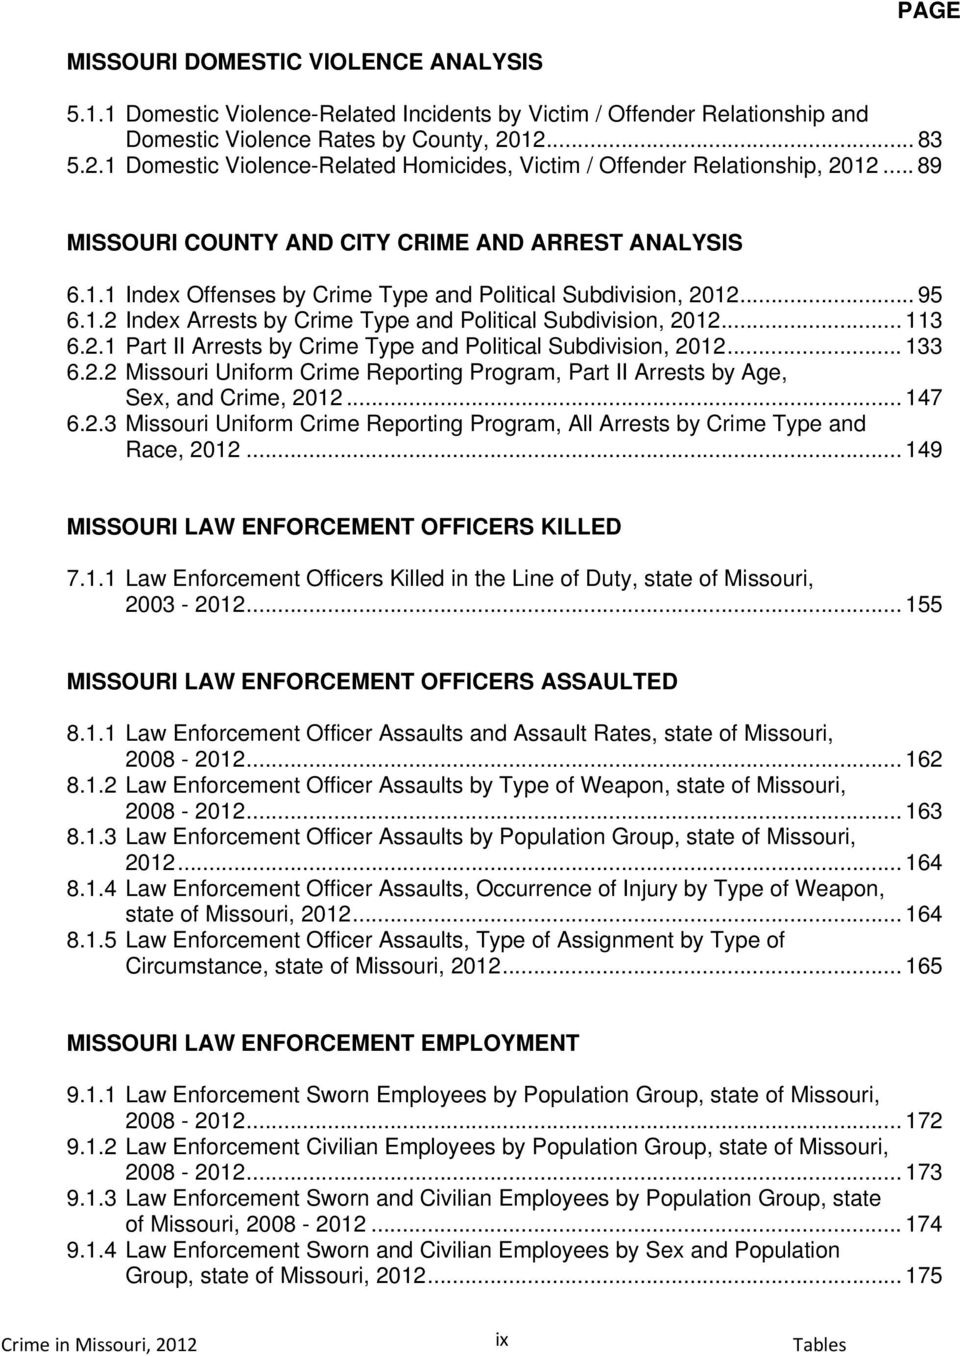 .. 113 6.2.1 Part II Arrests by Crime Type and Political Subdivision,... 133 6.2.2 Missouri Uniform Crime Reporting Program, Part II Arrests by Age, Sex, and Crime,... 147 6.2.3 Missouri Uniform Crime Reporting Program, All Arrests by Crime Type and Race,.